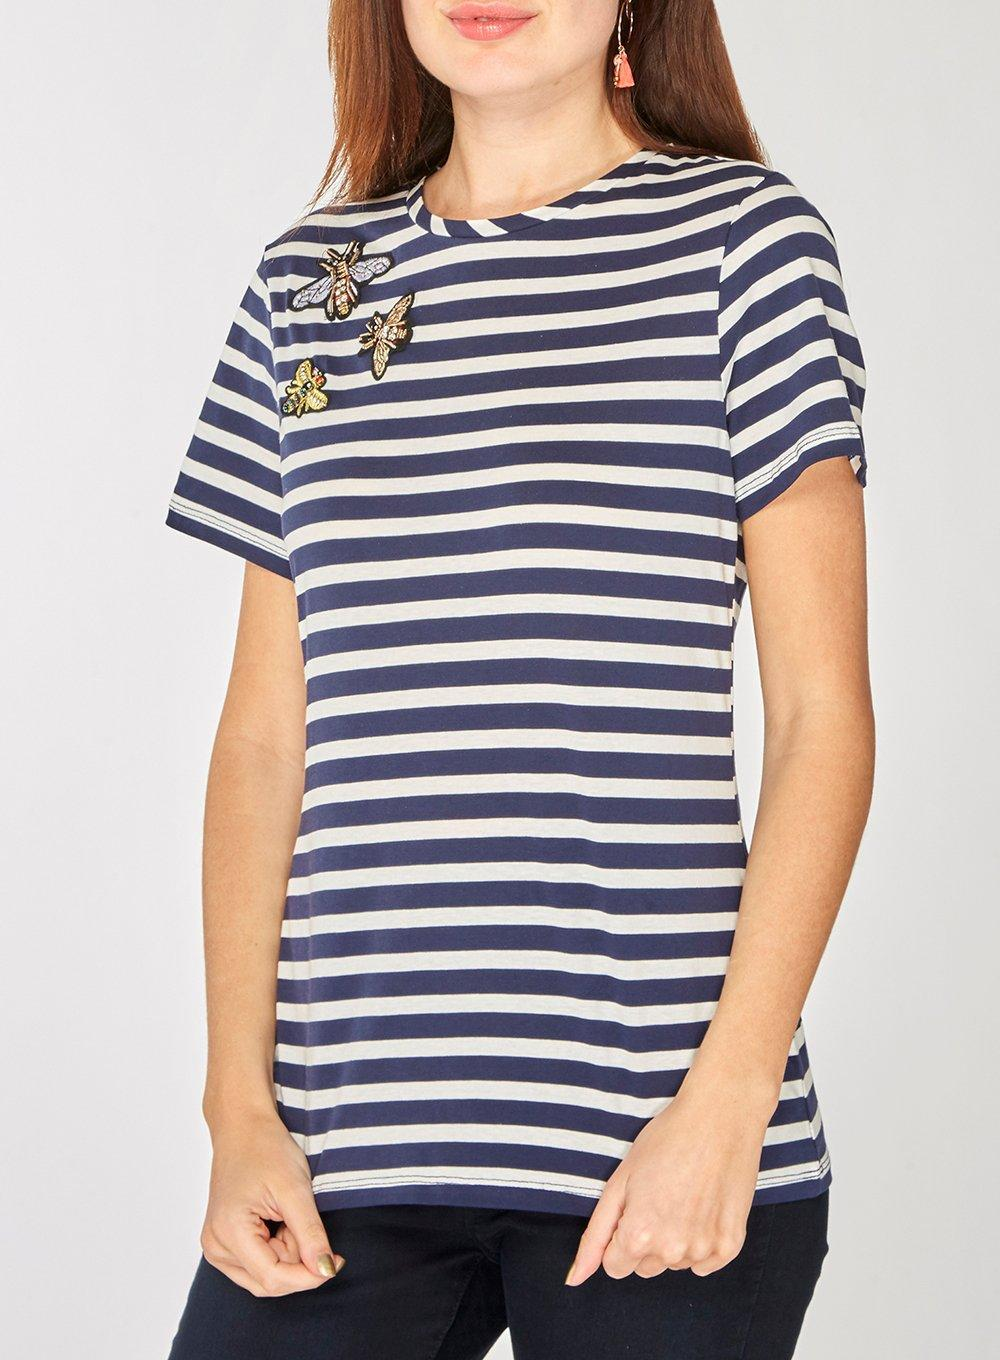 Cheap Sale Order Dorothy Perkins Womens and White Striped Bee Embellished T-Shirt- Outlet 100% Original Buy Cheap Choice With Credit Card Online ggK9Jyx